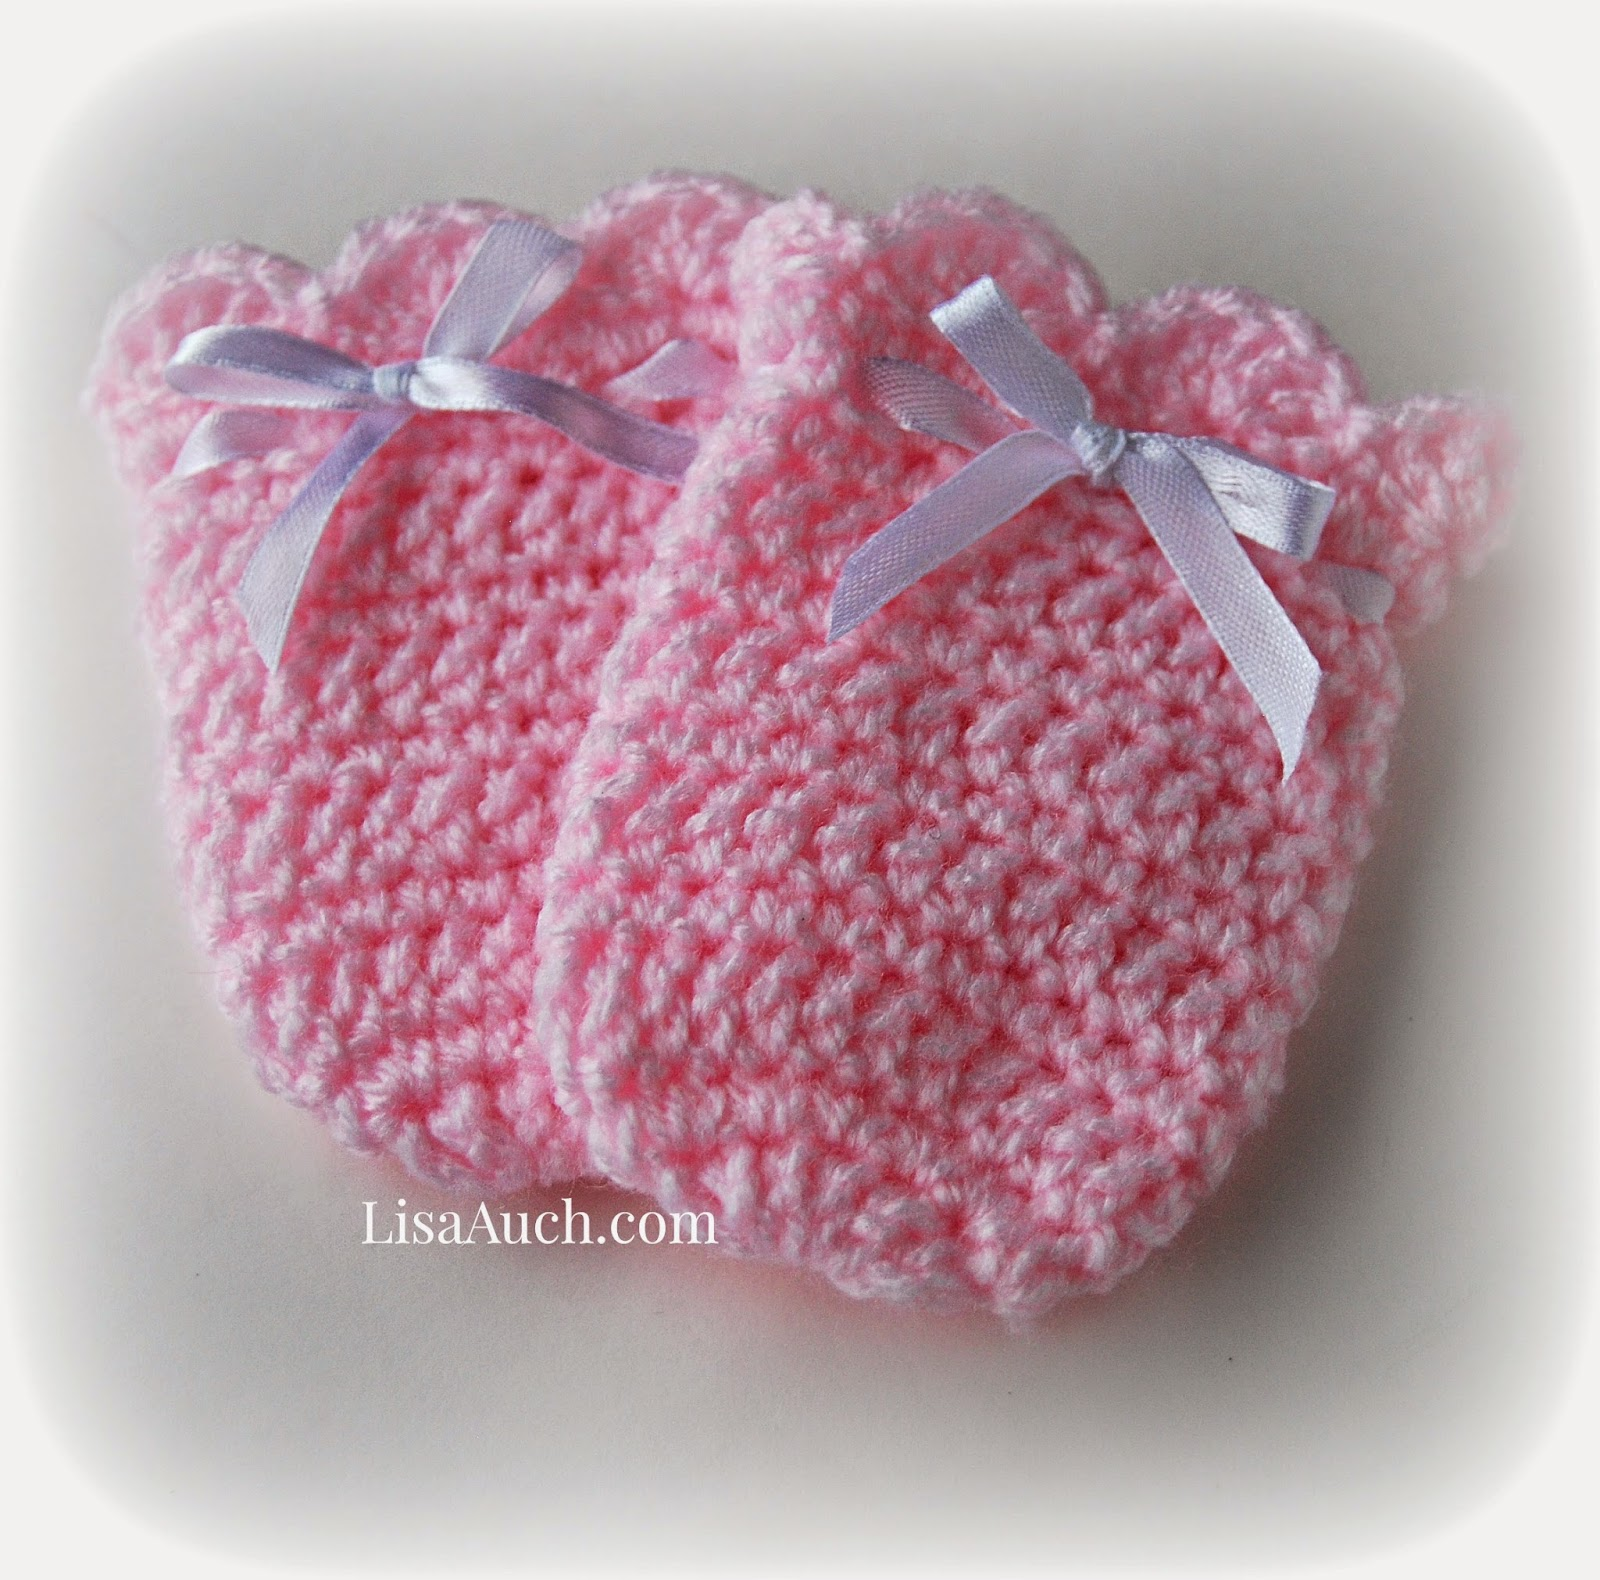 Baby Mittens Knitting Pattern 4 Needles : Crochet Baby Mittens Vintage Swing Crochet Baby Mitts A ...